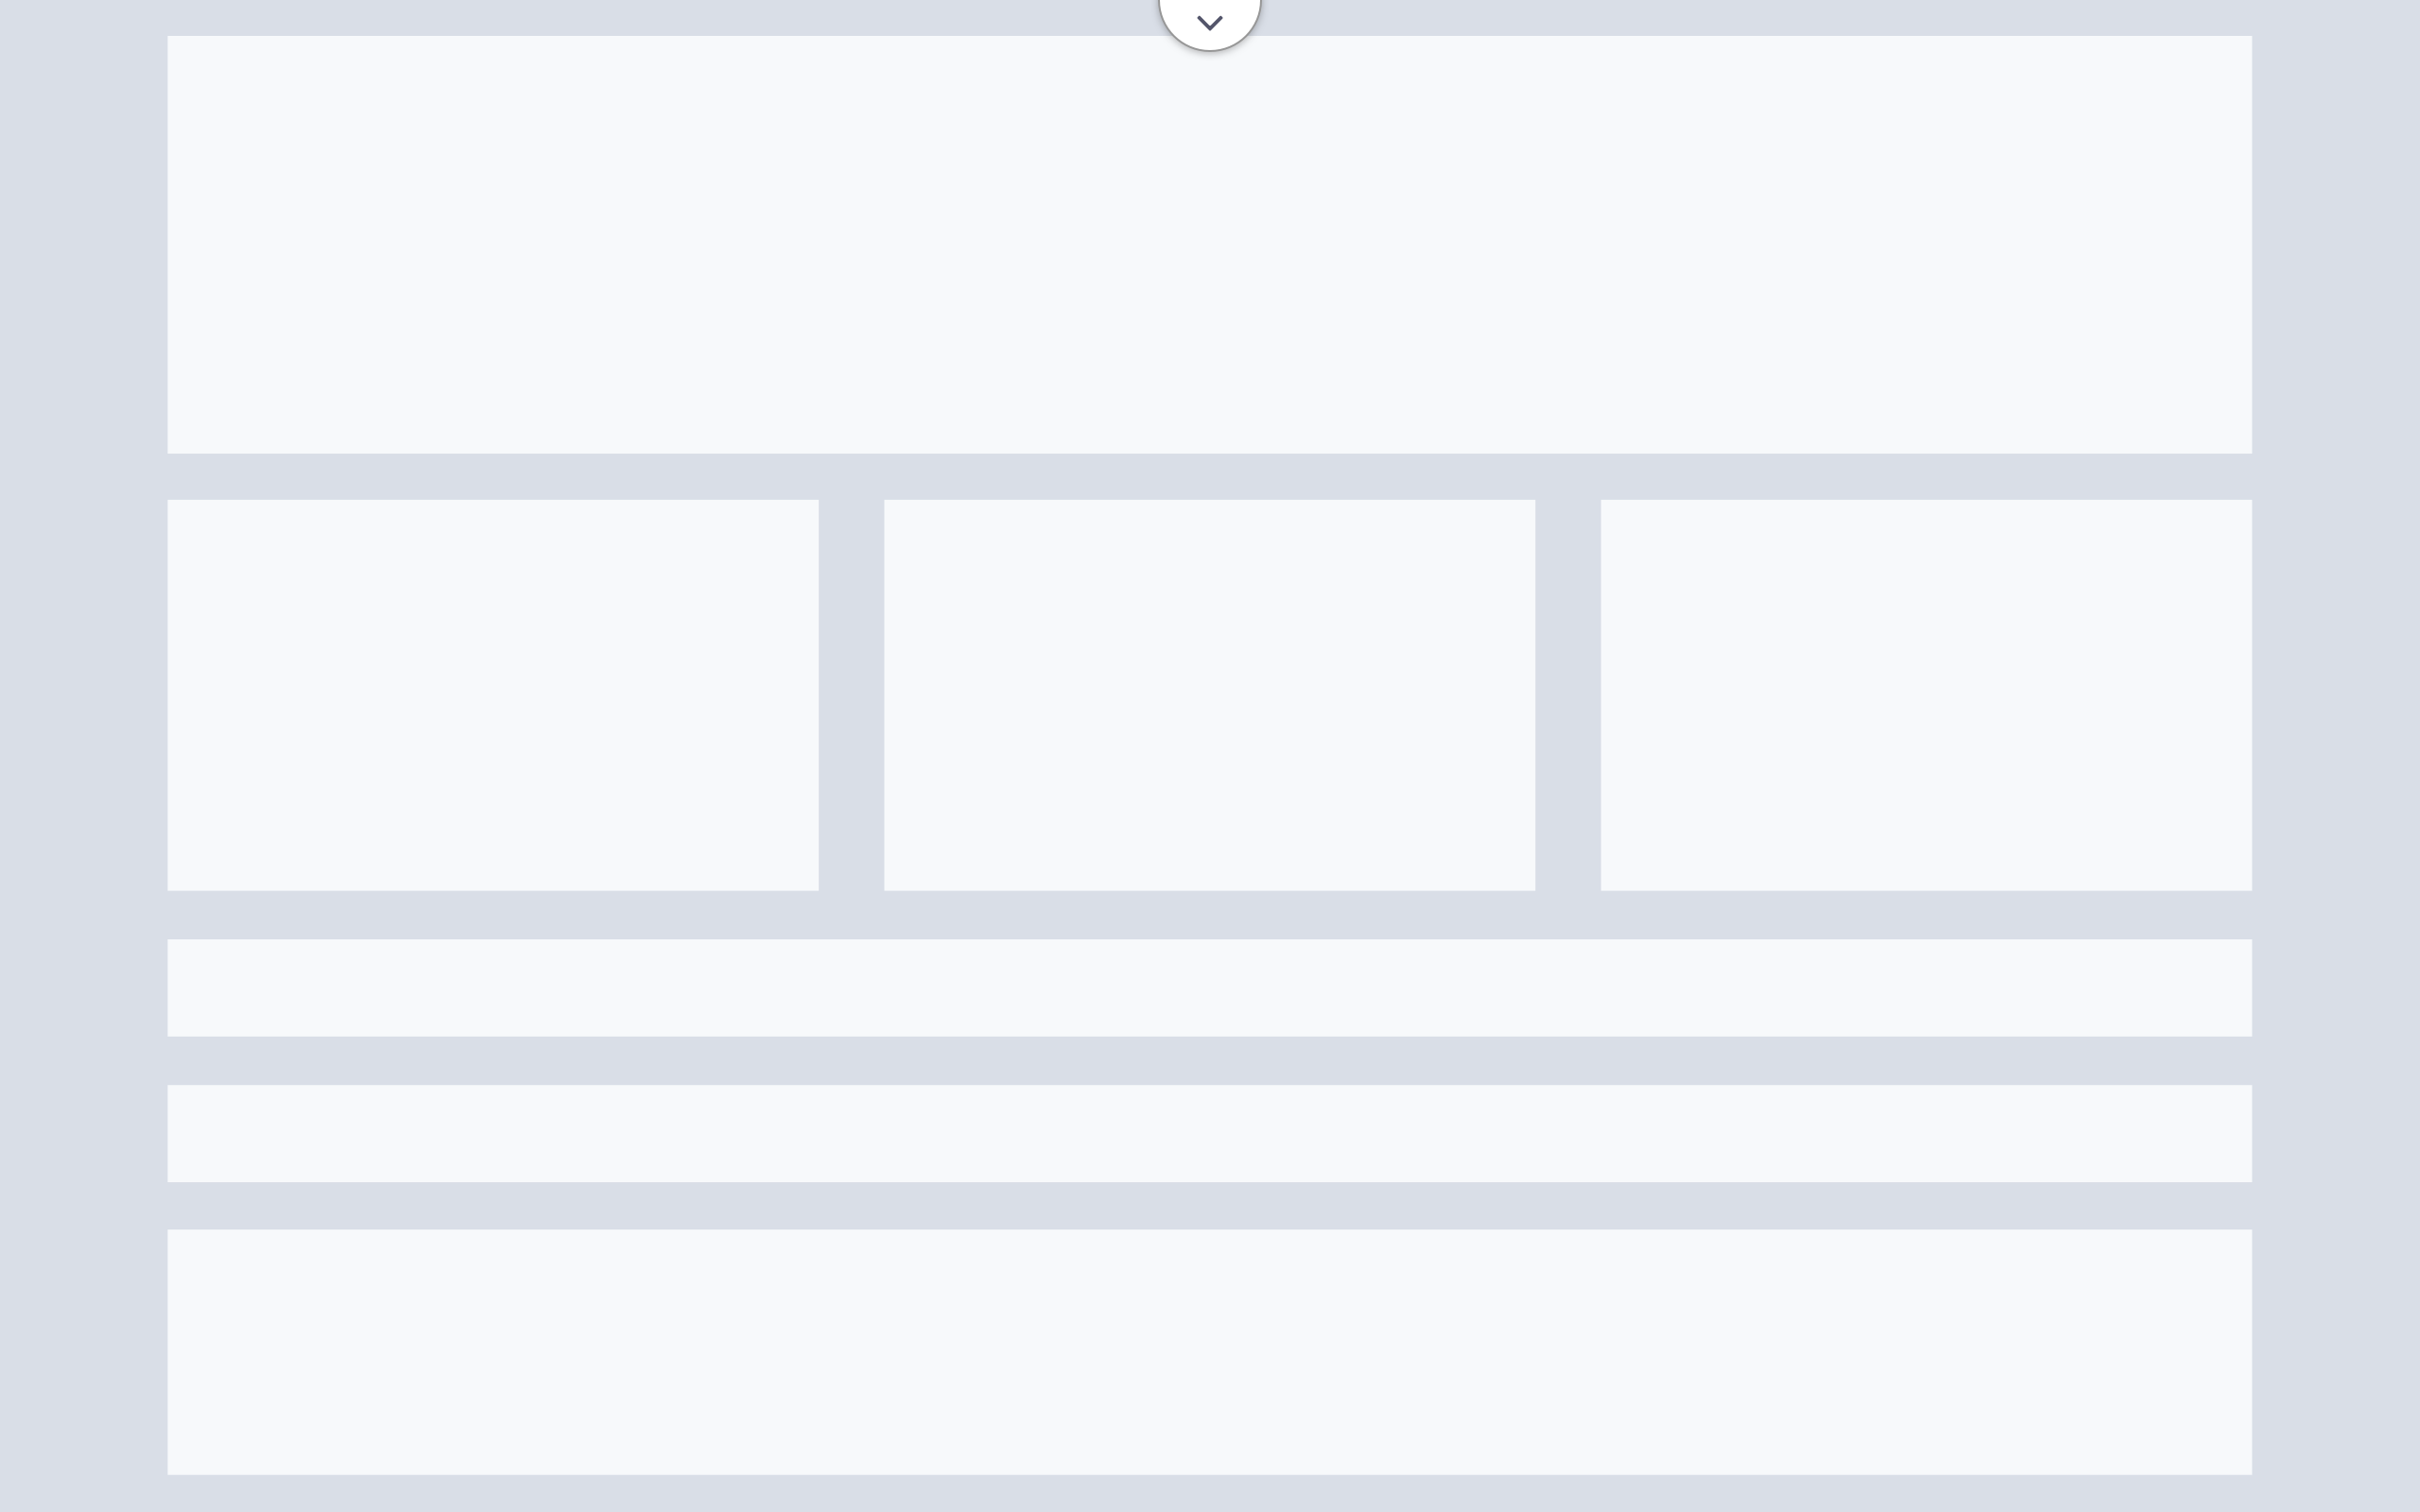 A wireframe showing a full-screen canvas; click button to show header and panels